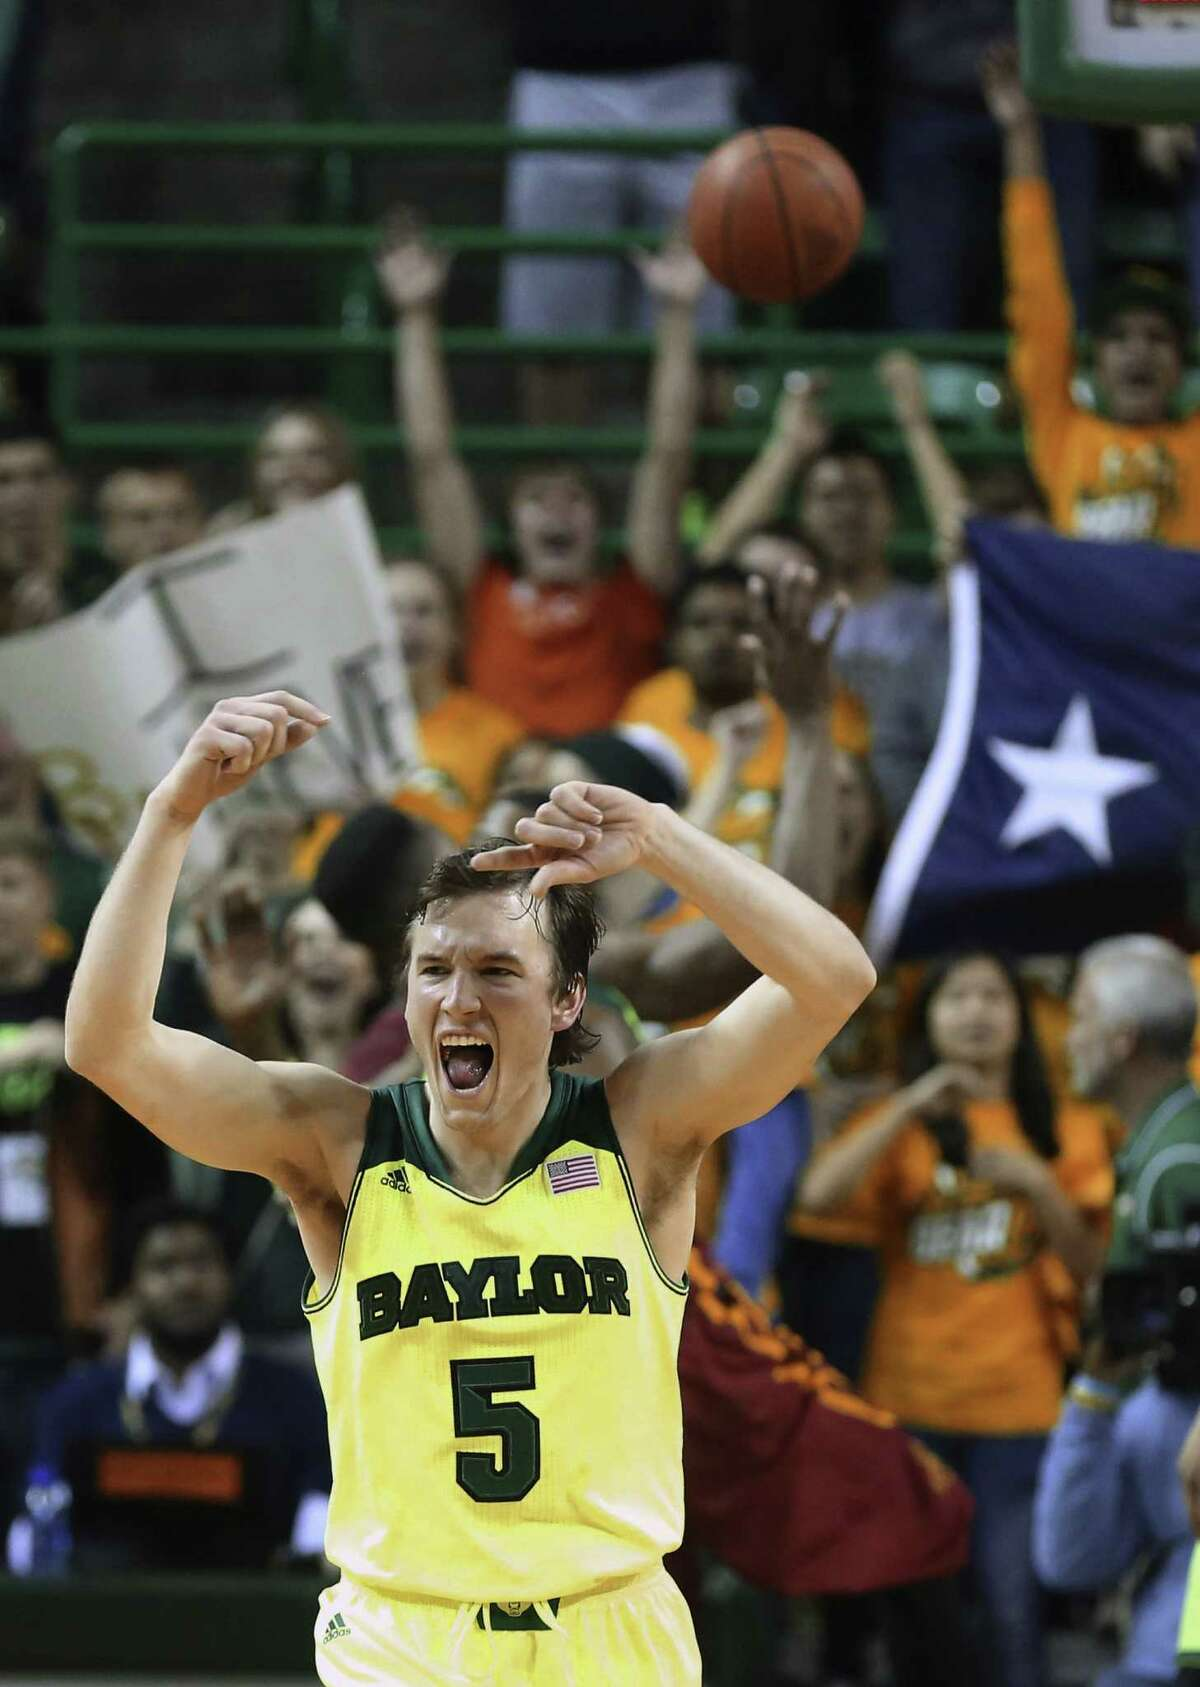 Brady Heslip, playing in his final regular-season game at home, scored 18 points in Baylor's 74-61 upset of Iowa State. Heslip is one of several Big 12 players who hail from Canada. He and Kenny Chery give Baylor an All-Canadian backcourt.